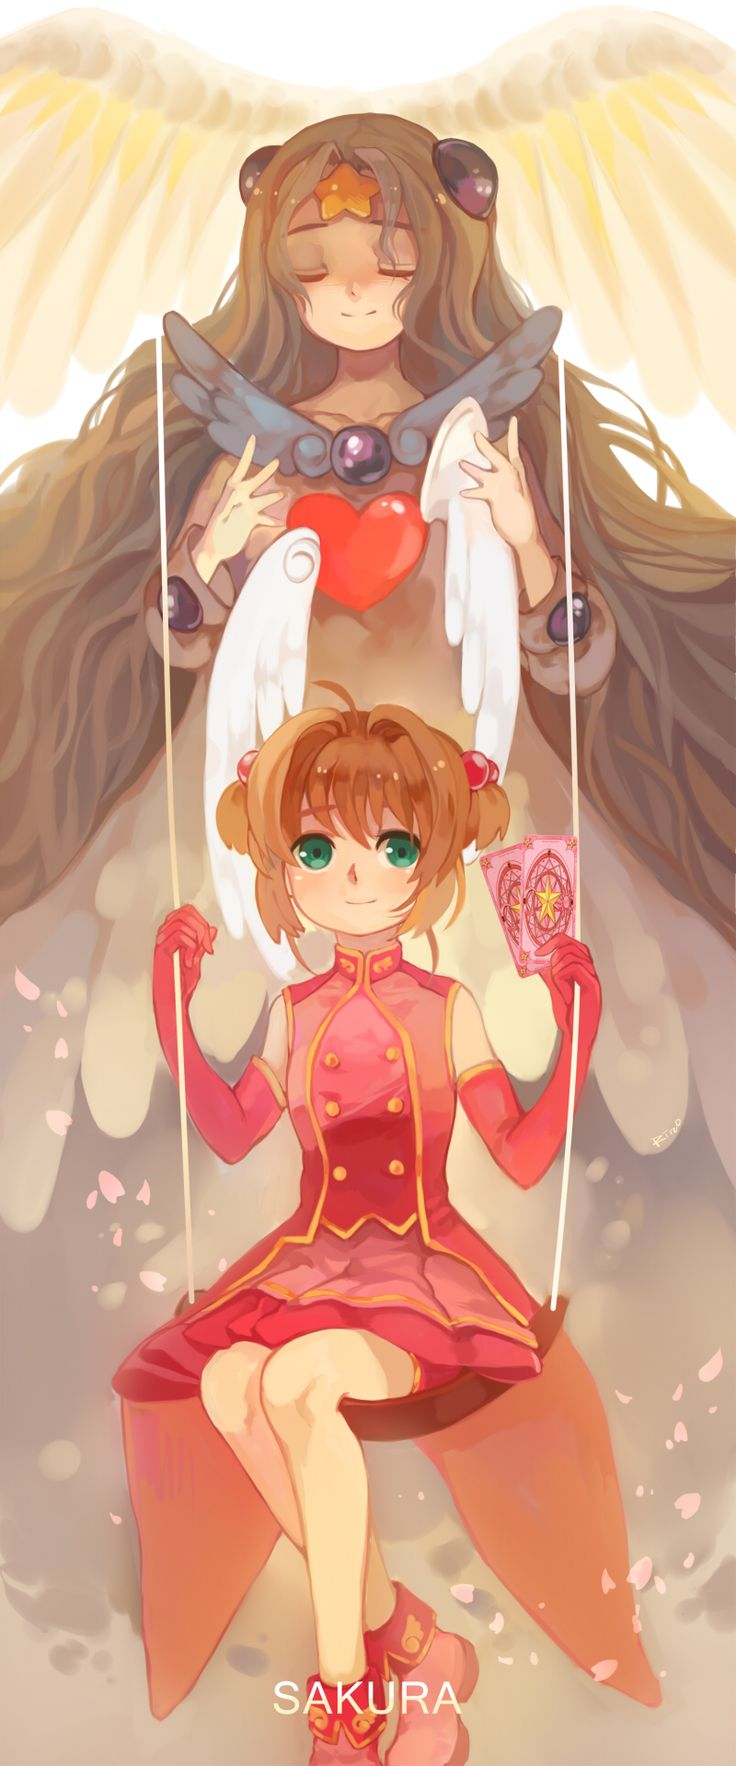 K Sakura and the Void - Cardcaptor Sakura